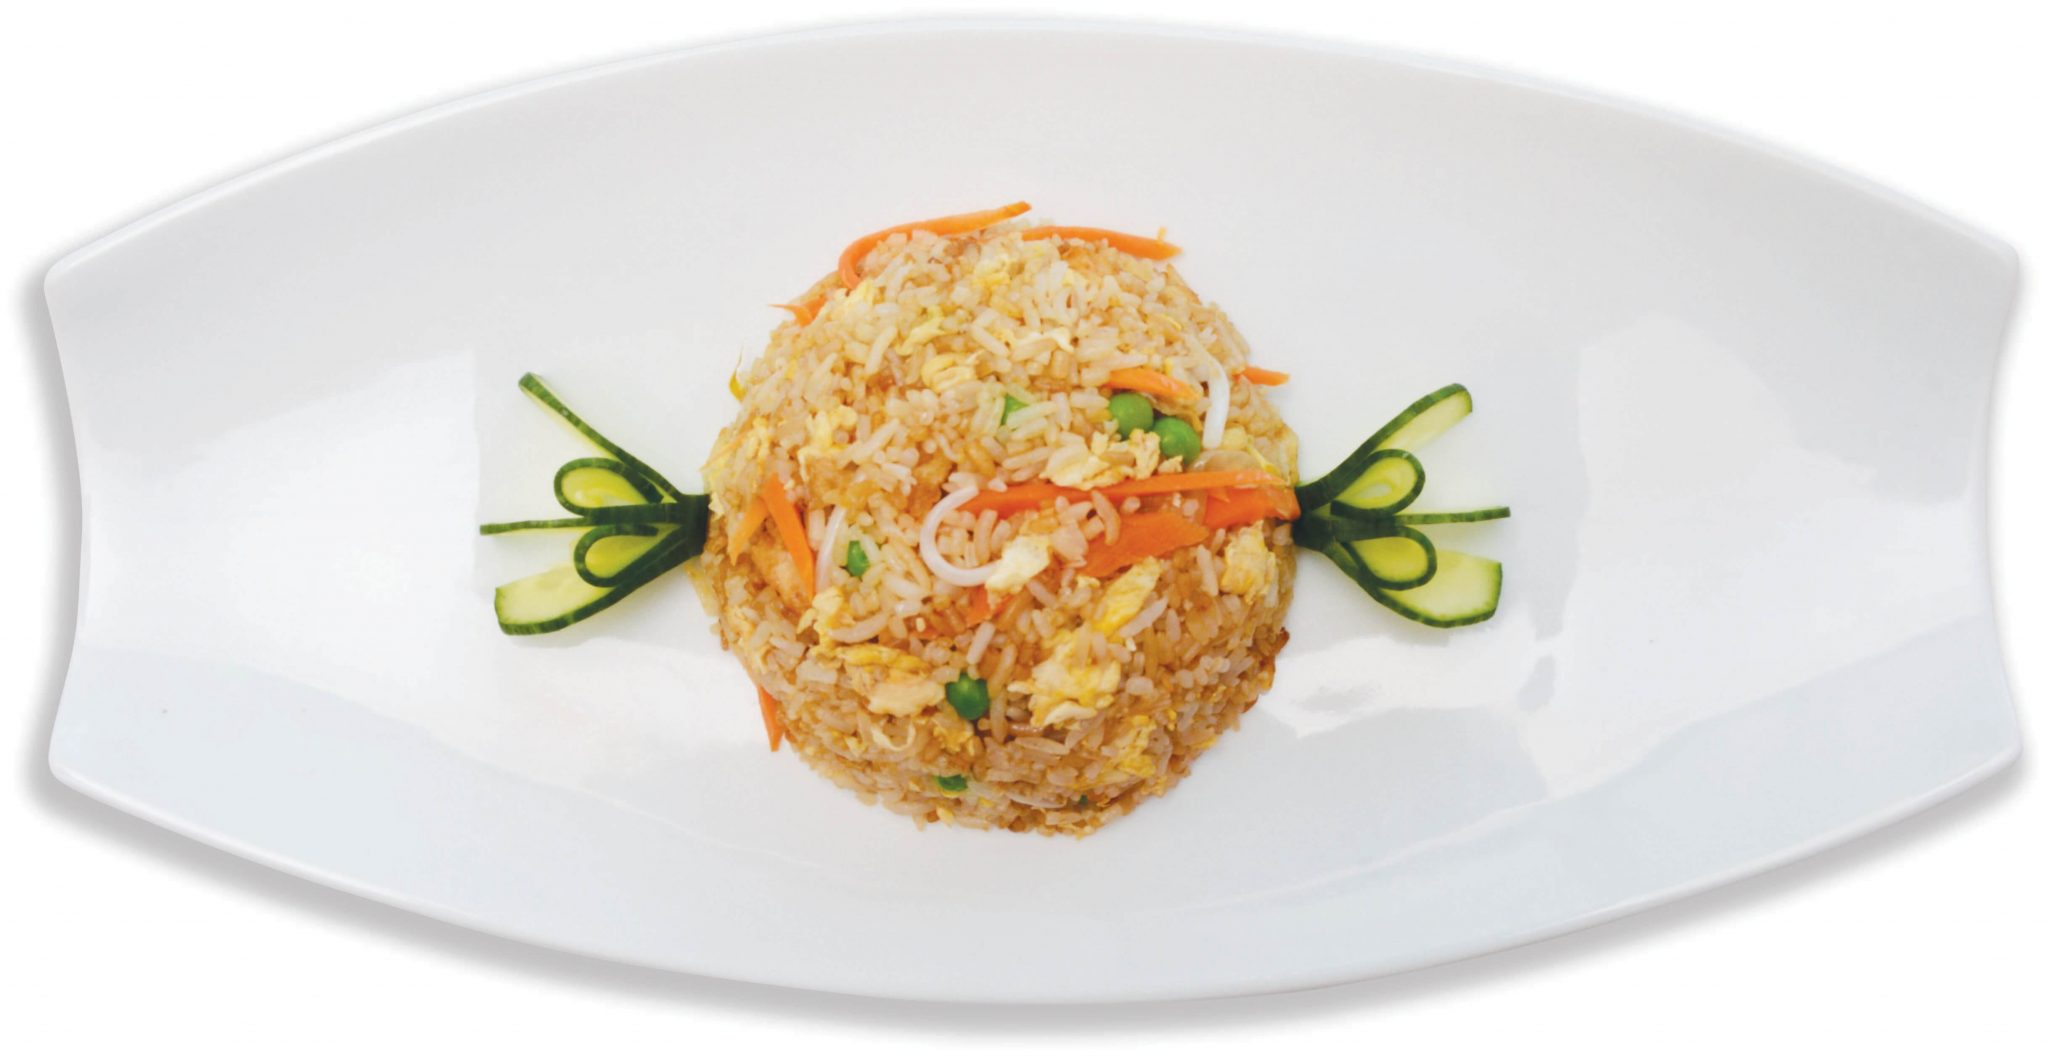 Chow Faan (Fried Rice)